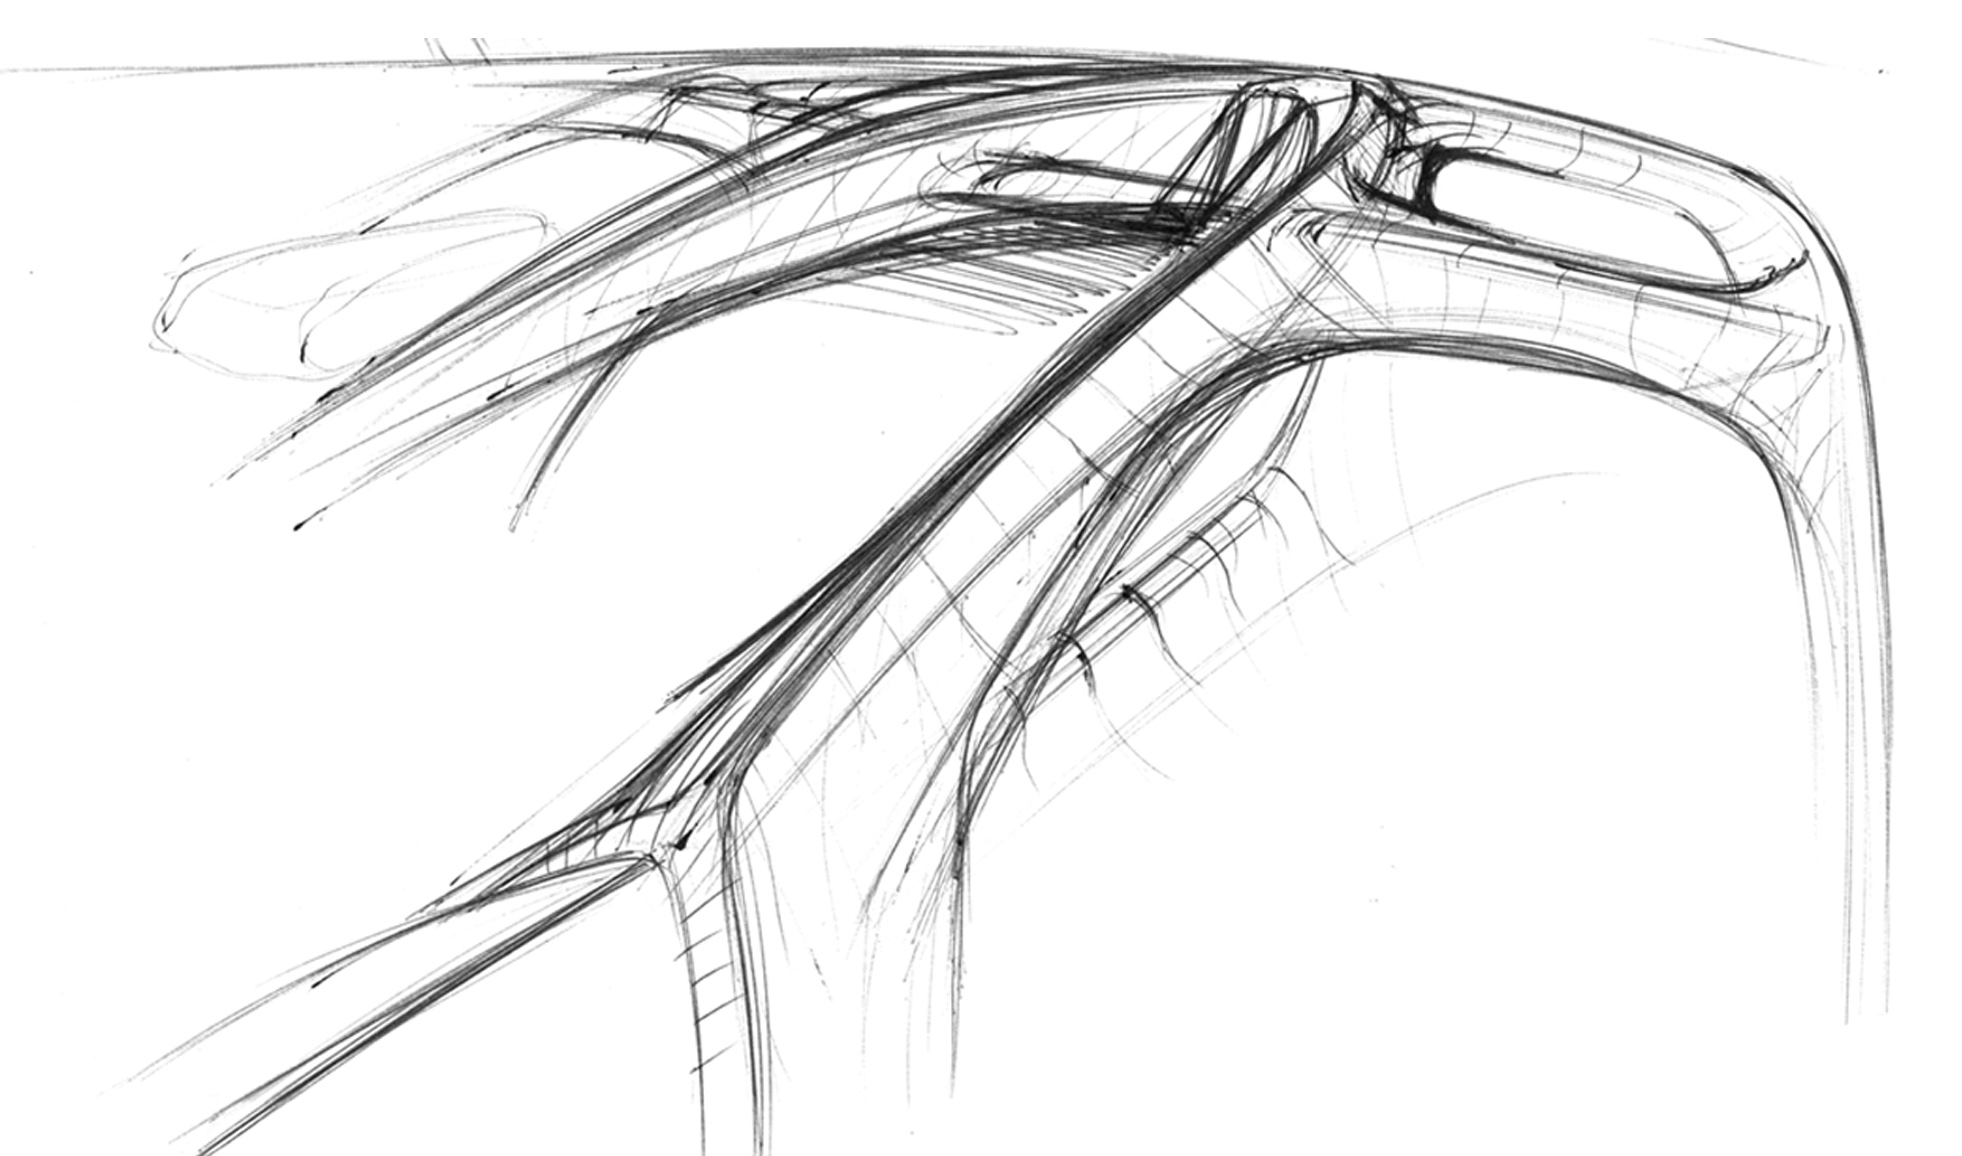 FT1_Interior_Sketches2.jpg